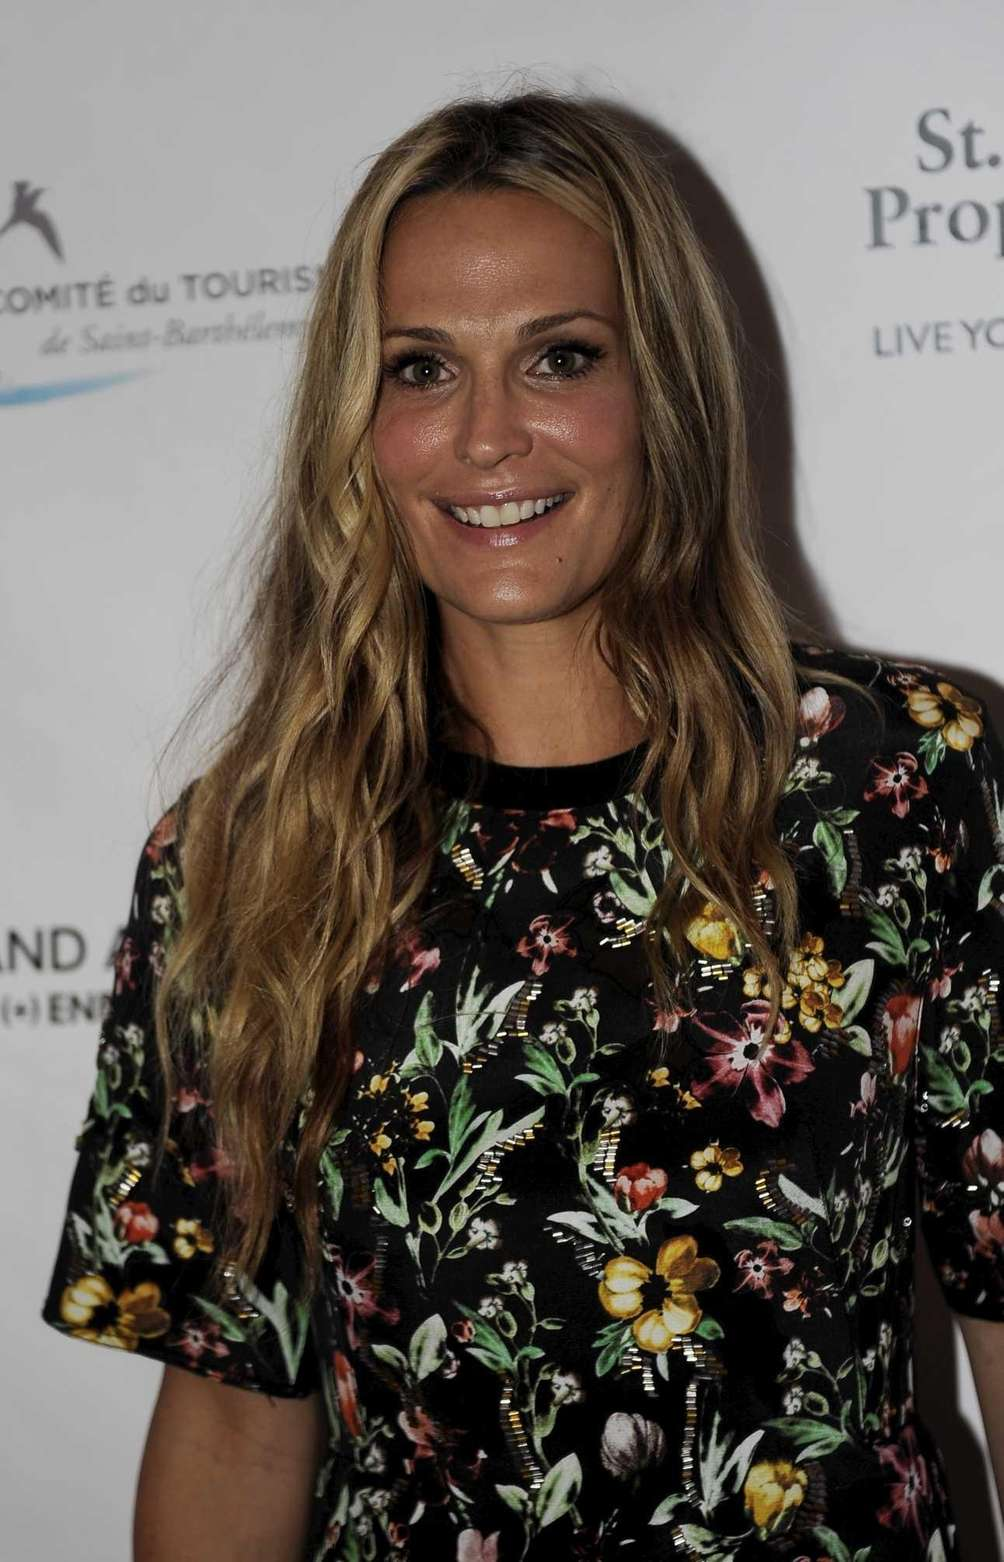 Super Model and Actress Molly Sims Host 2nd